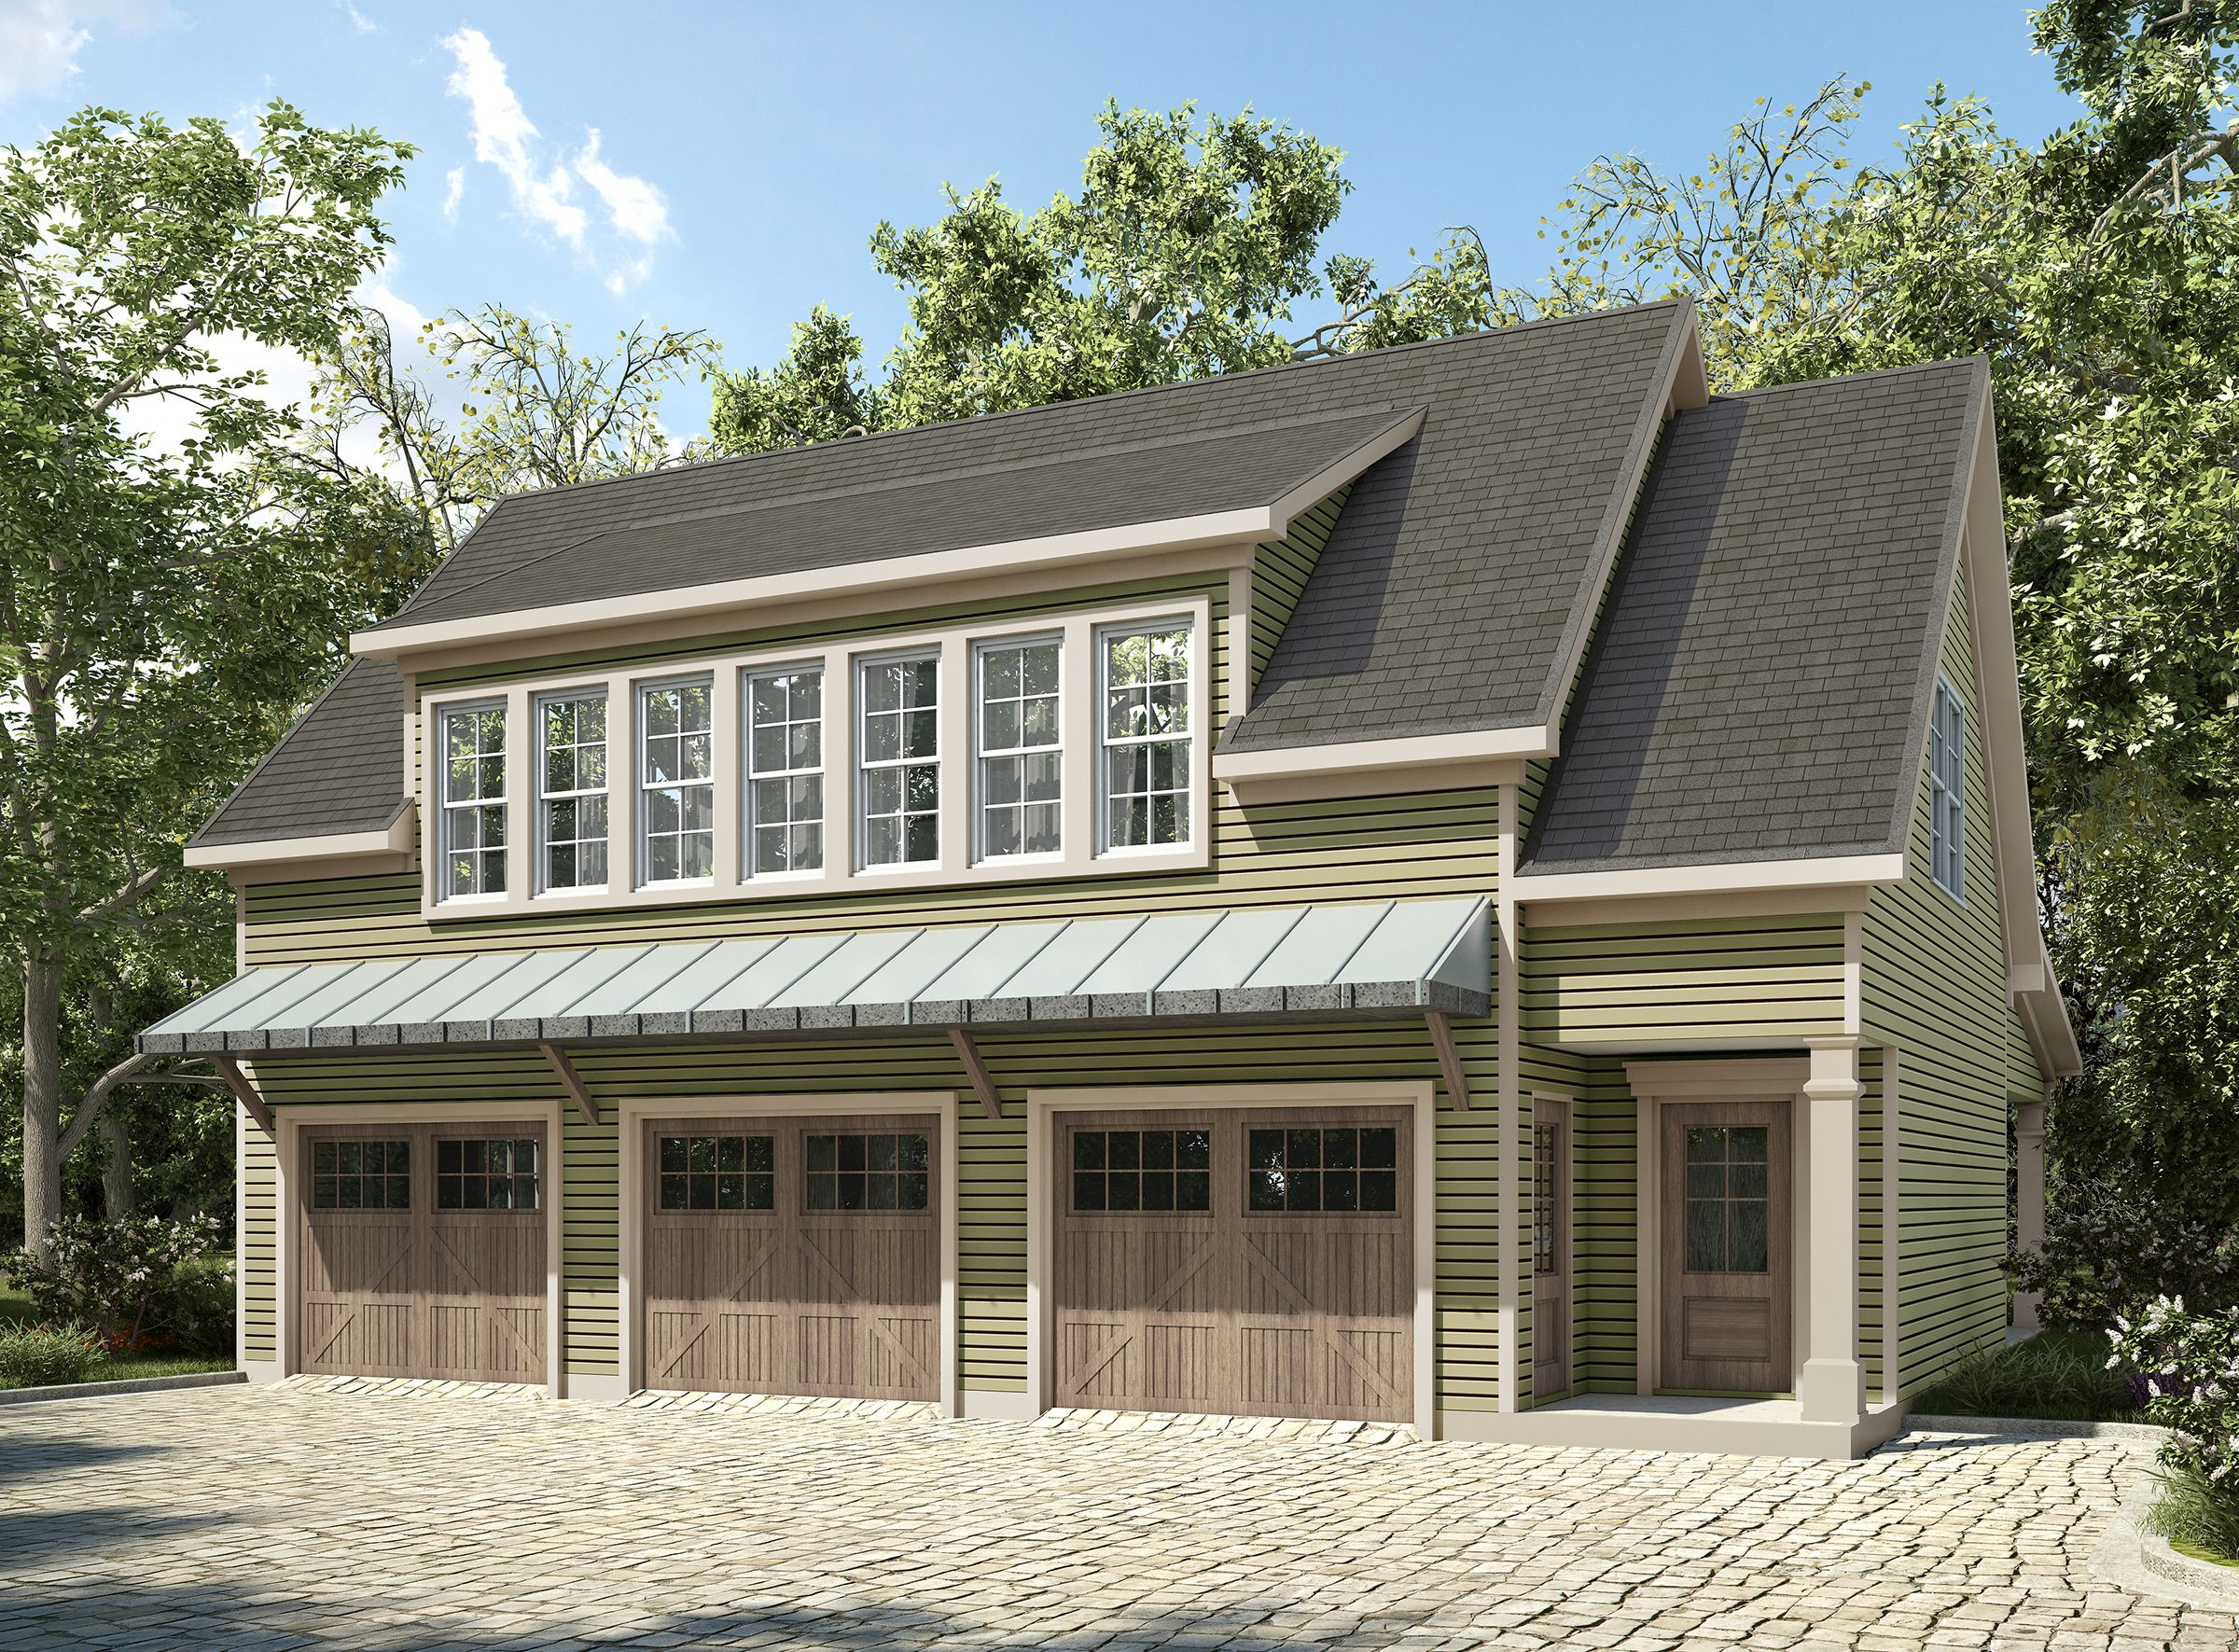 Plan 36057dk 3 bay carriage house plan with shed roof in for House plans for apartments